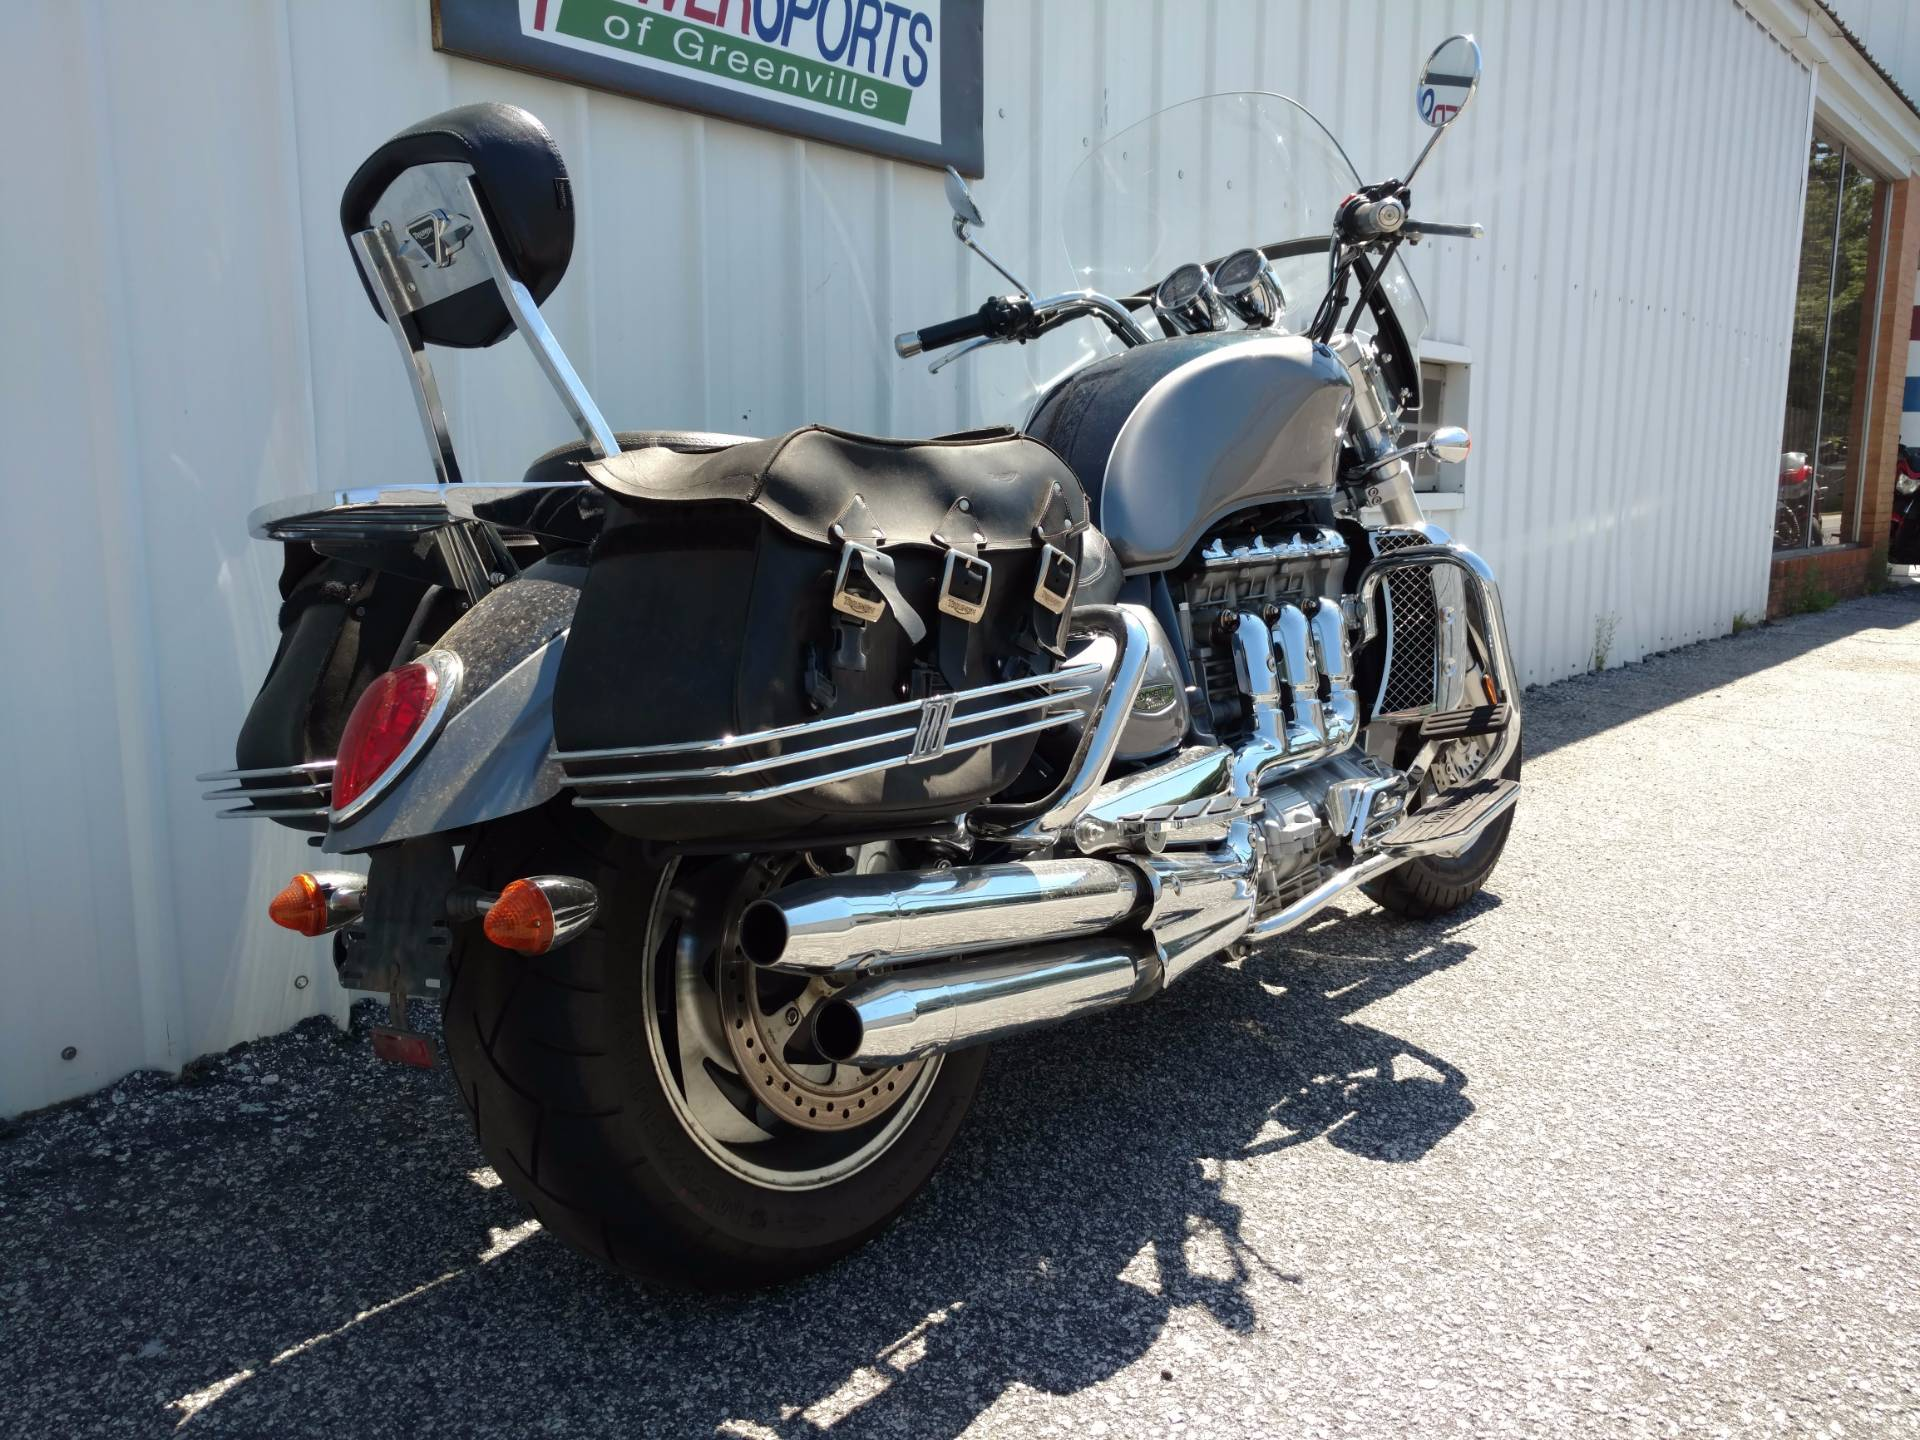 2007 Triumph Rocket III Classic Tourer in Greenville, South Carolina